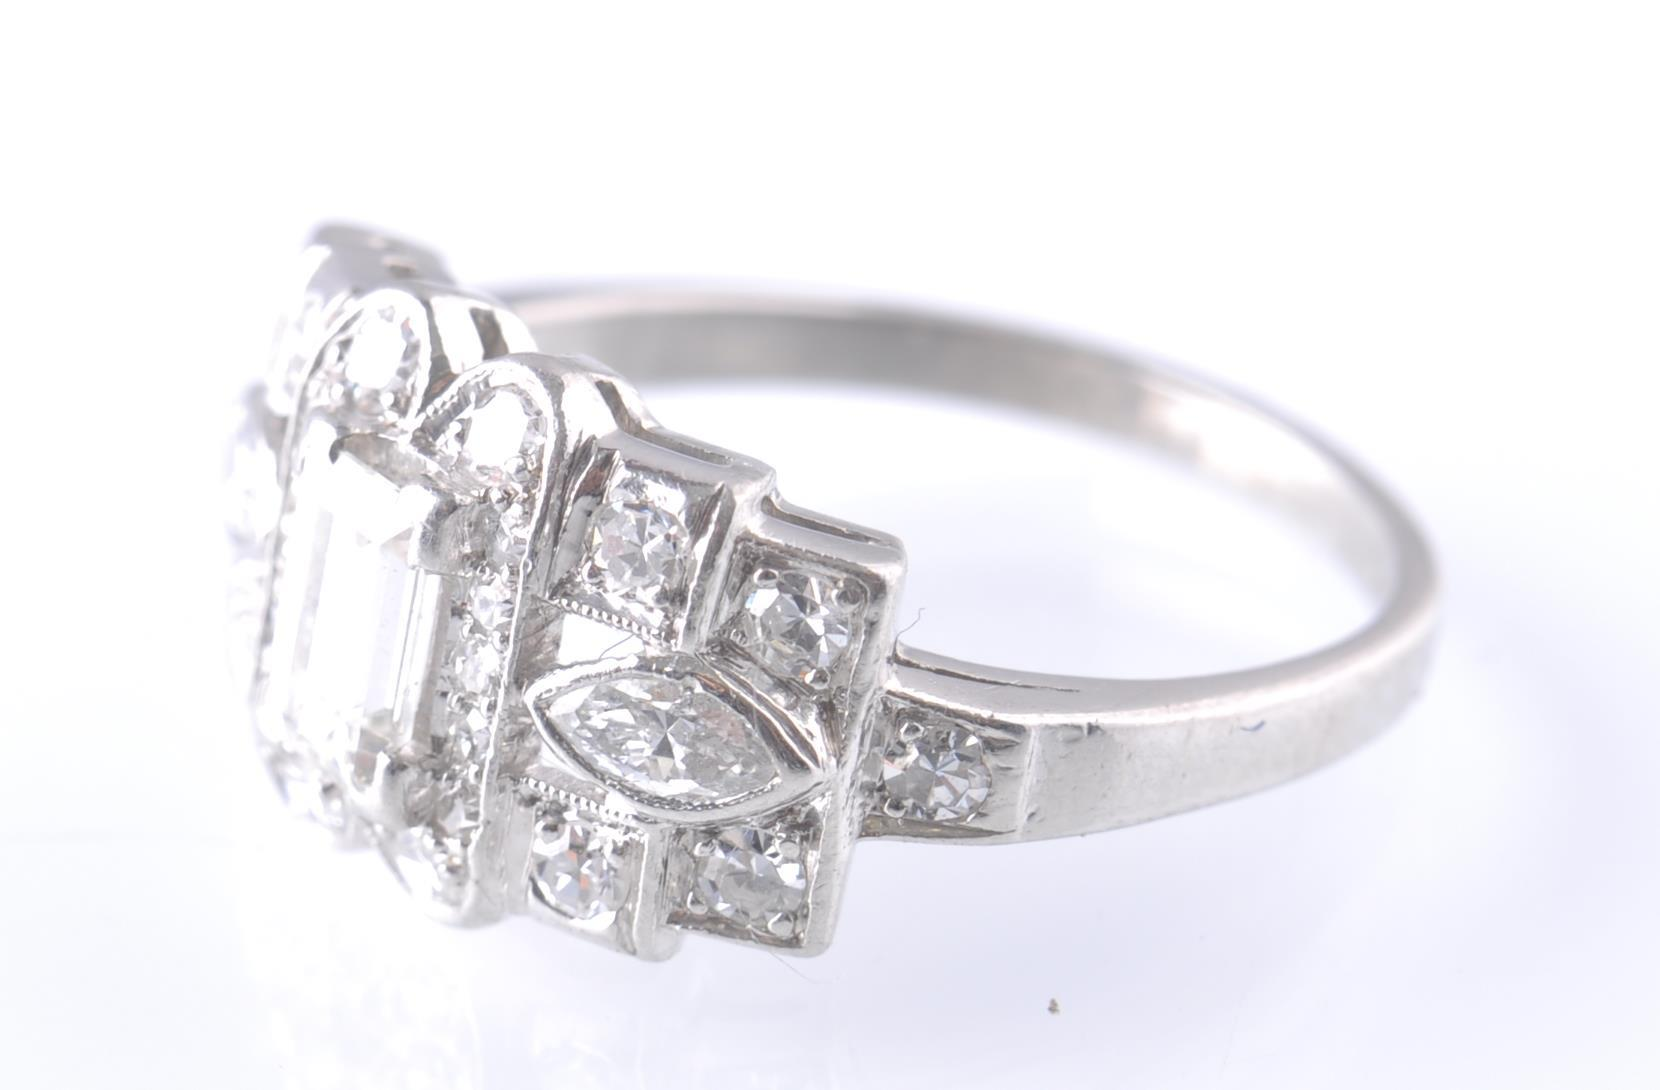 ART DECO PLATINUM AND DIAMOND RING EMERALD AND MAR - Image 4 of 5